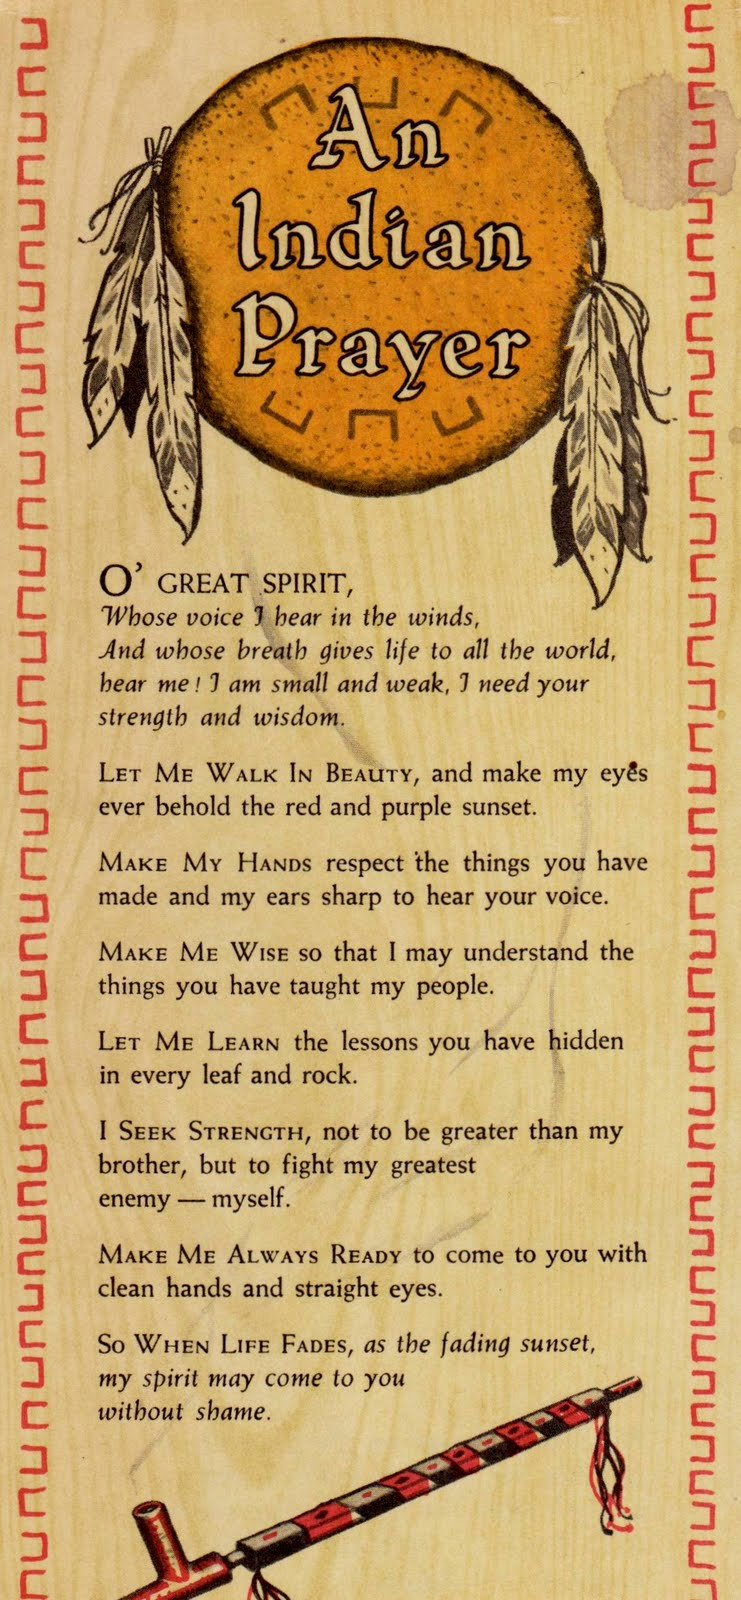 Native Indian Prayer http://www.gardening4us.com/2011/07/native-prayer-timely-reminder-as-earth.html